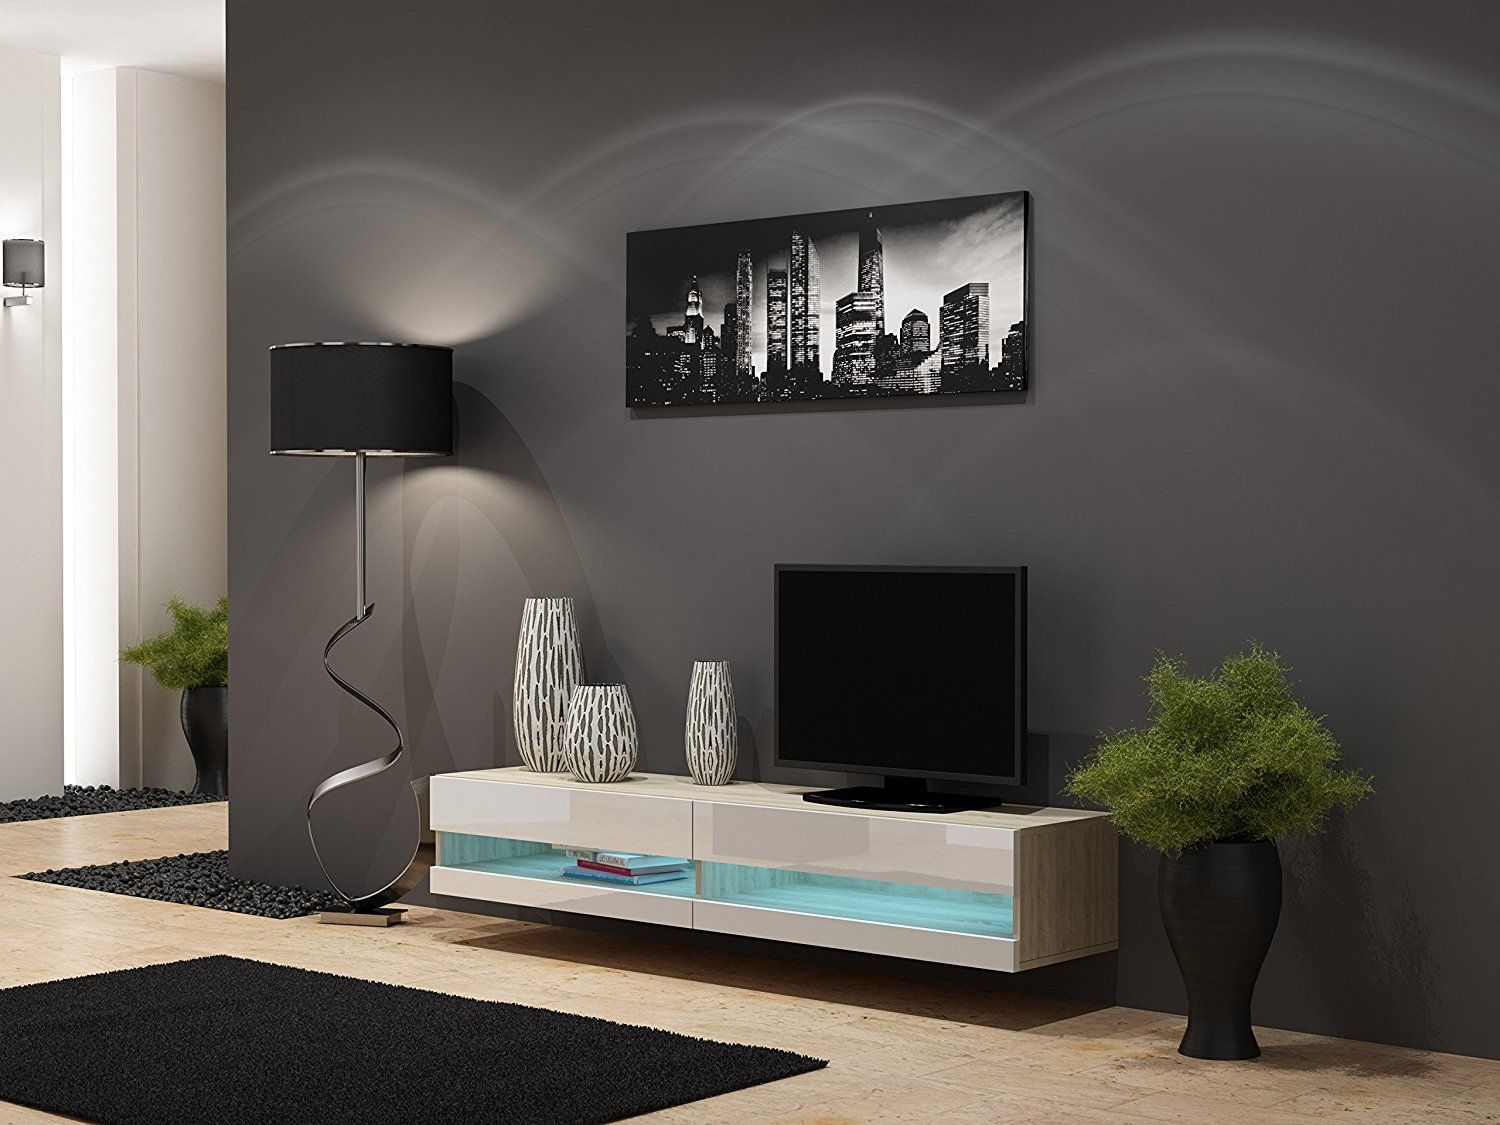 High Gloss Living Room Set With Led Lights Tv Stand Wall Mounted Cabinet Modern Display Units Floating Design White 1 Unit Co Uk